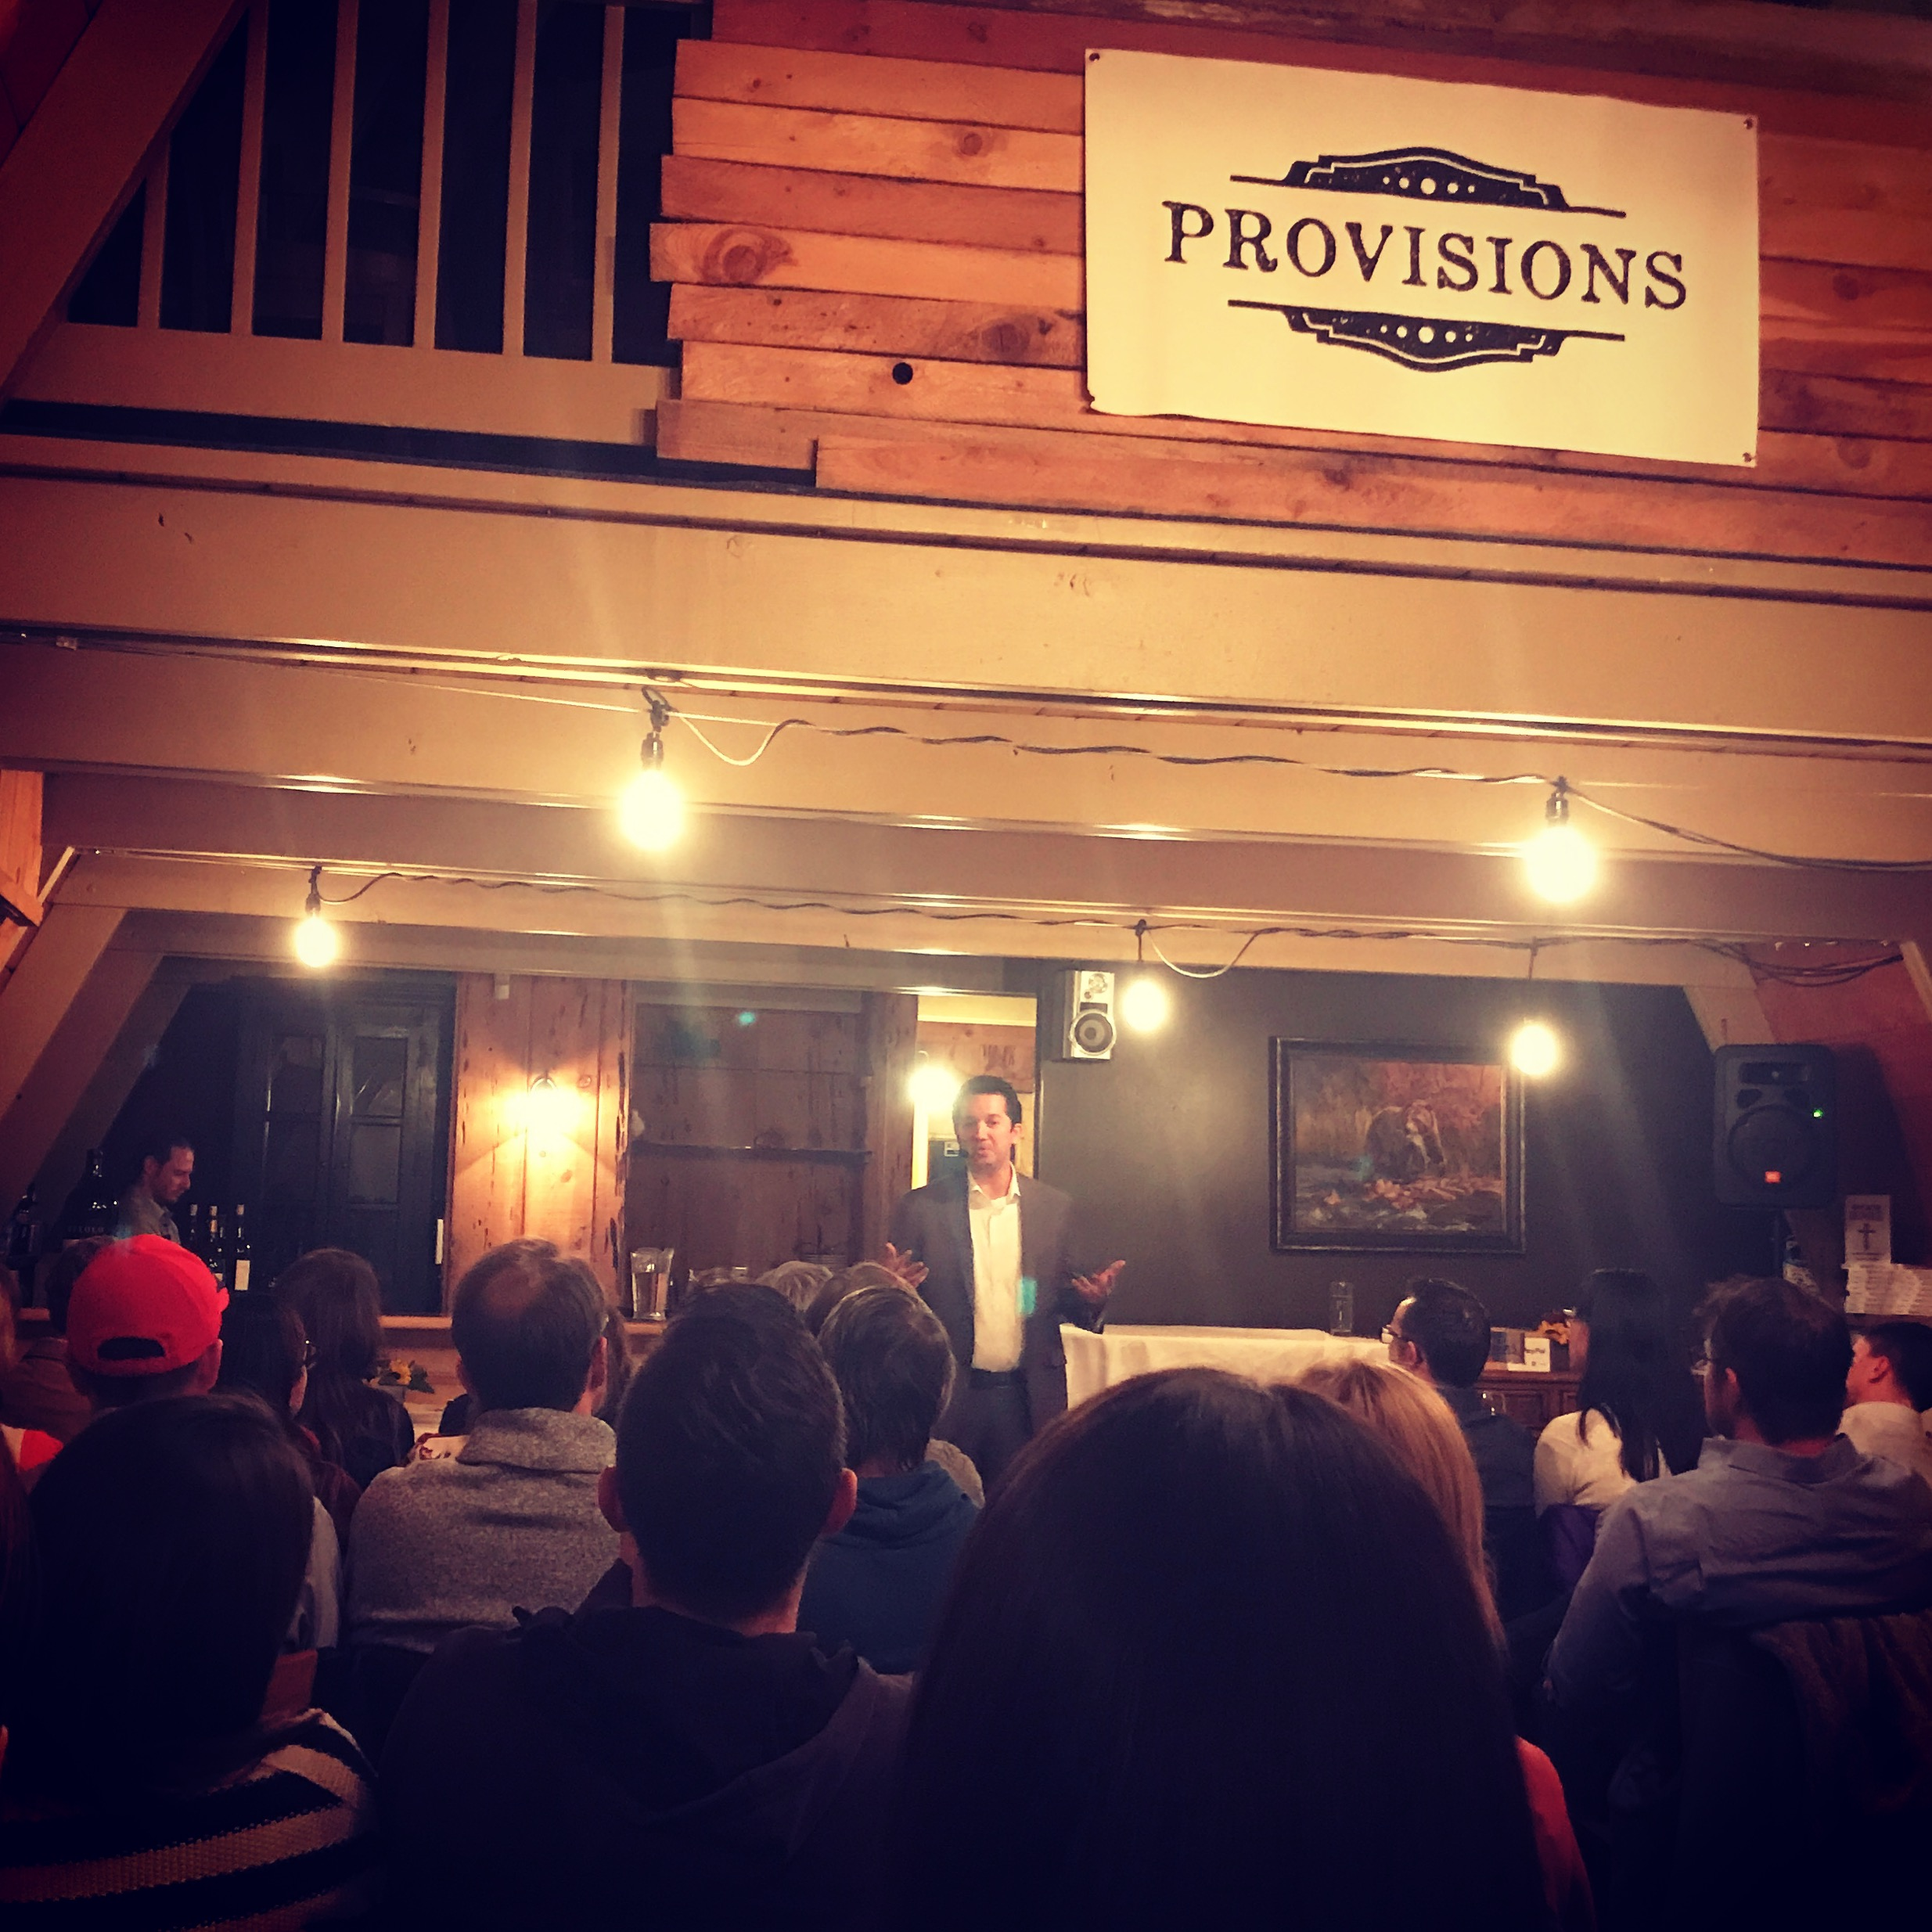 Theology uncorked - Trent HornNovember, 2018The Cabin at Provisions Restaurant